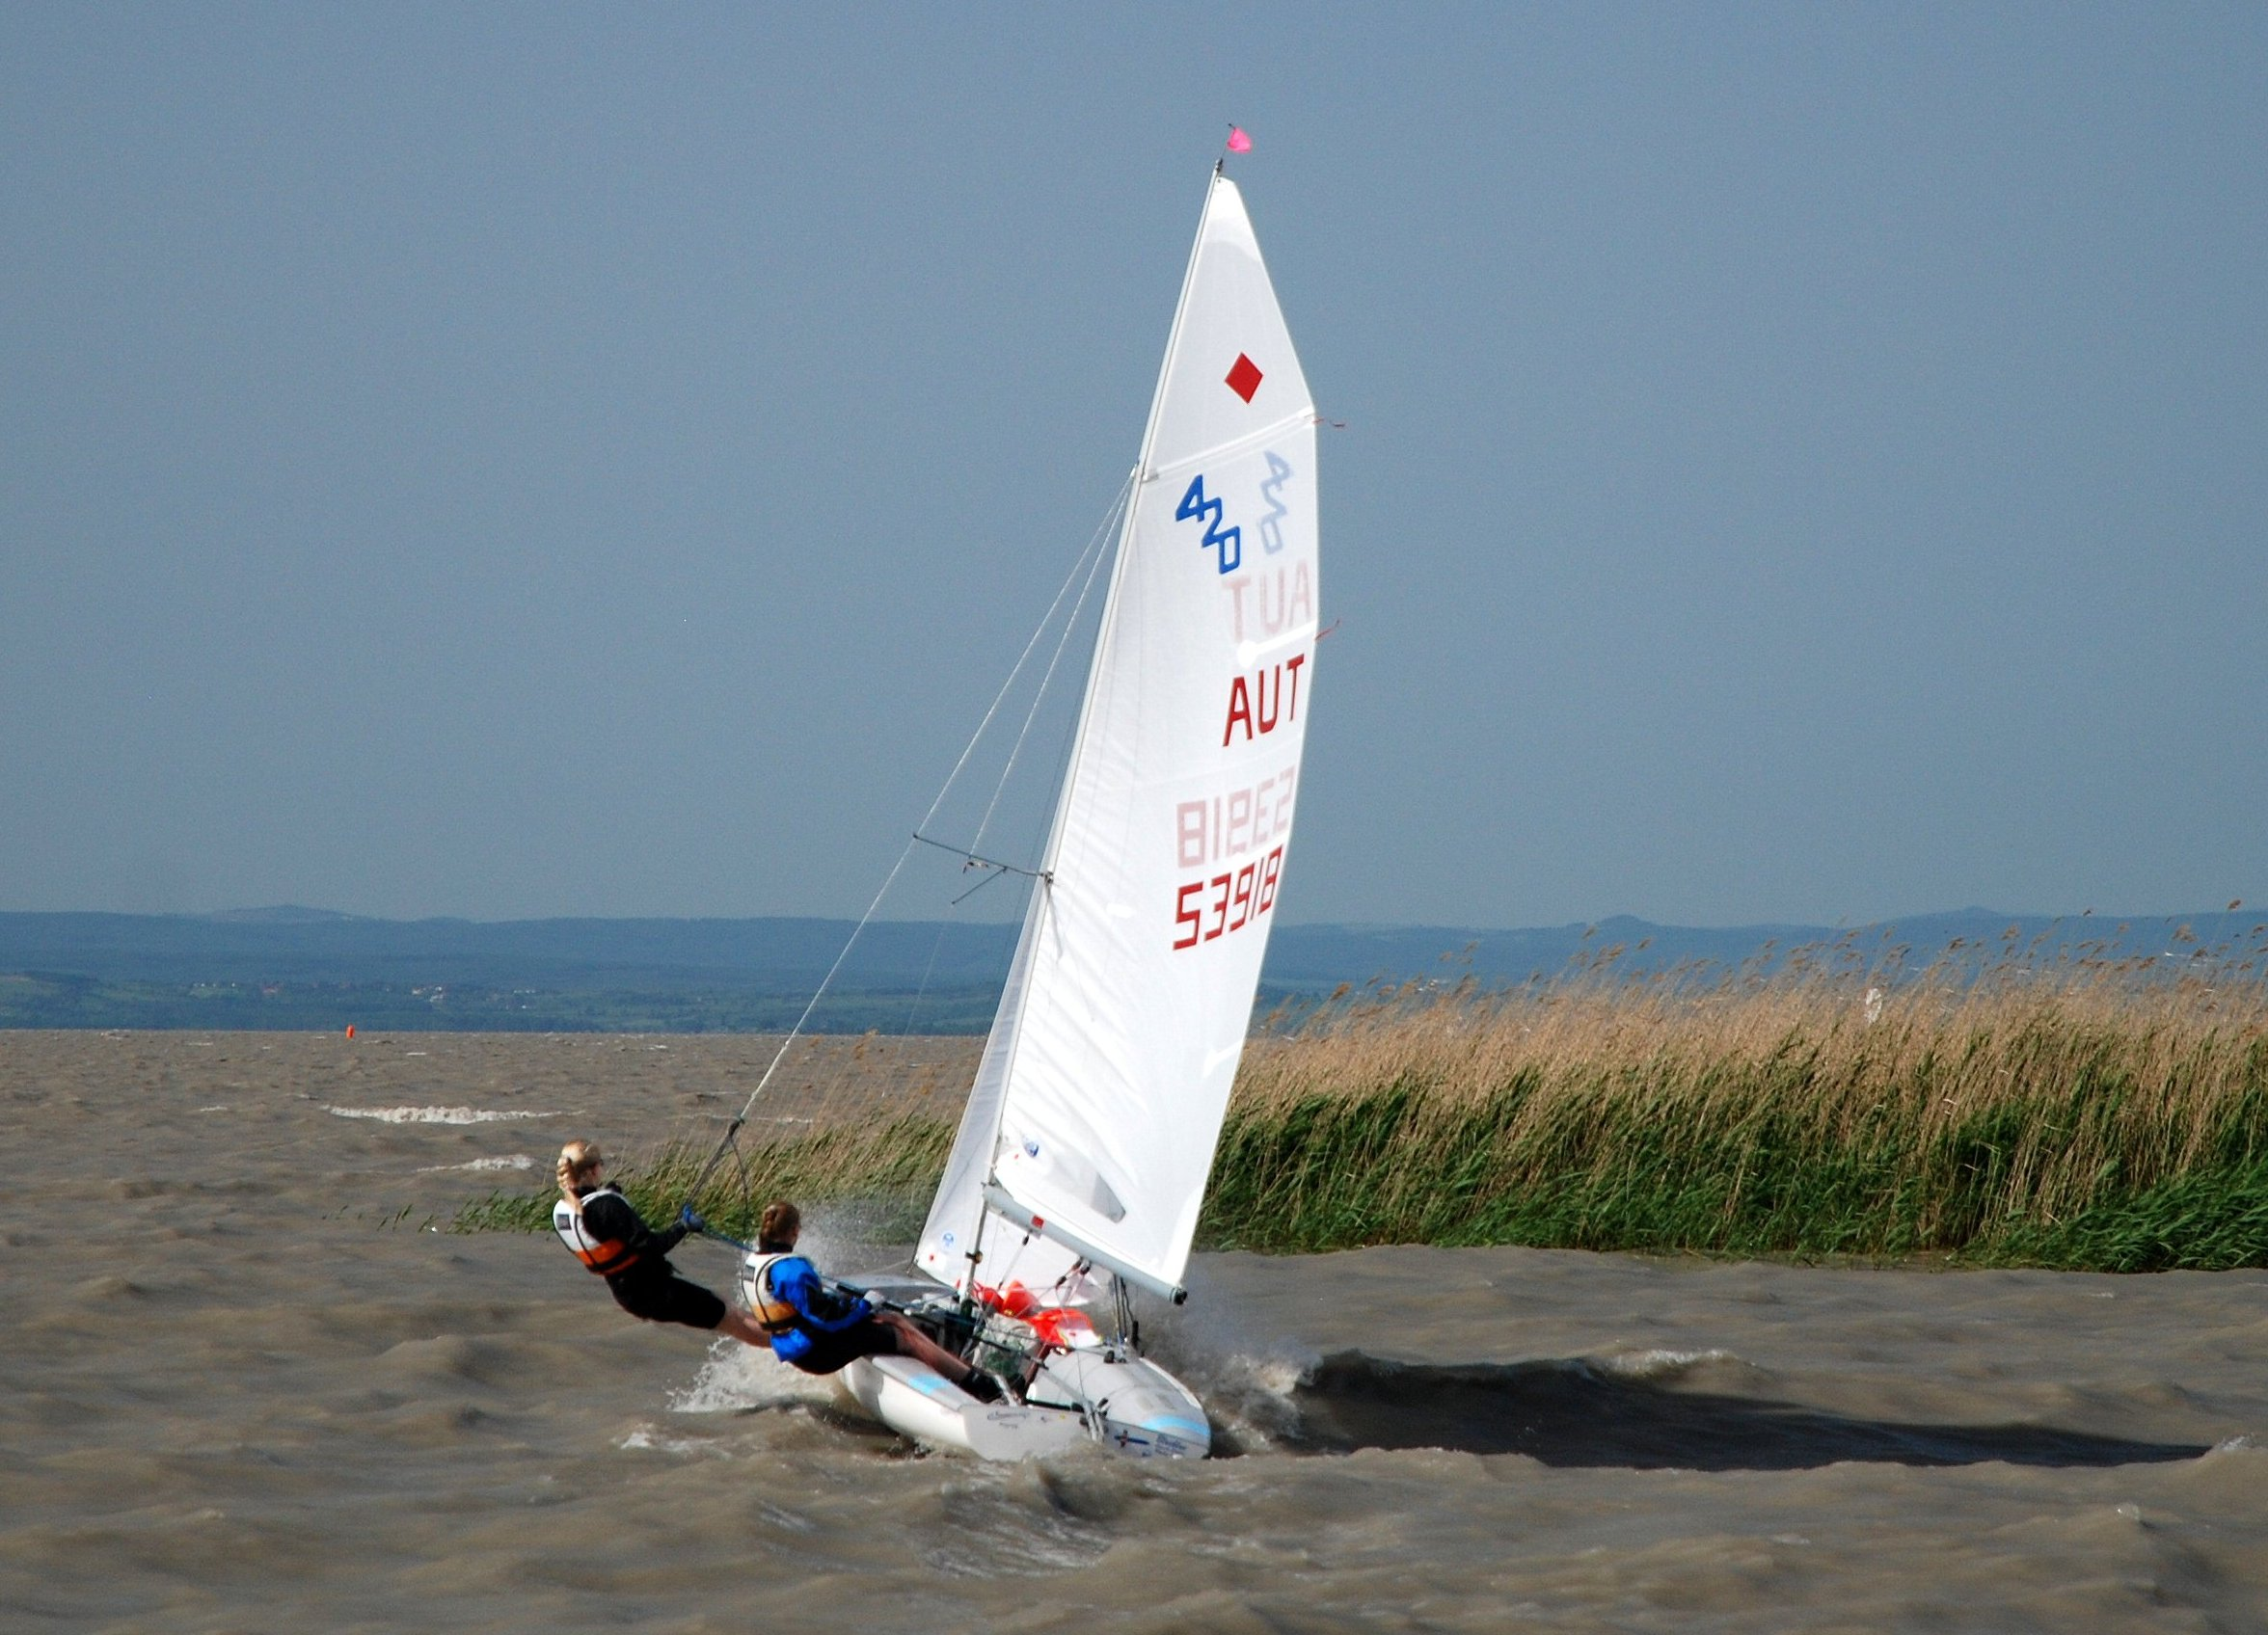 luschan buttinger am neusiedlersee bronze oestm2013 420er B